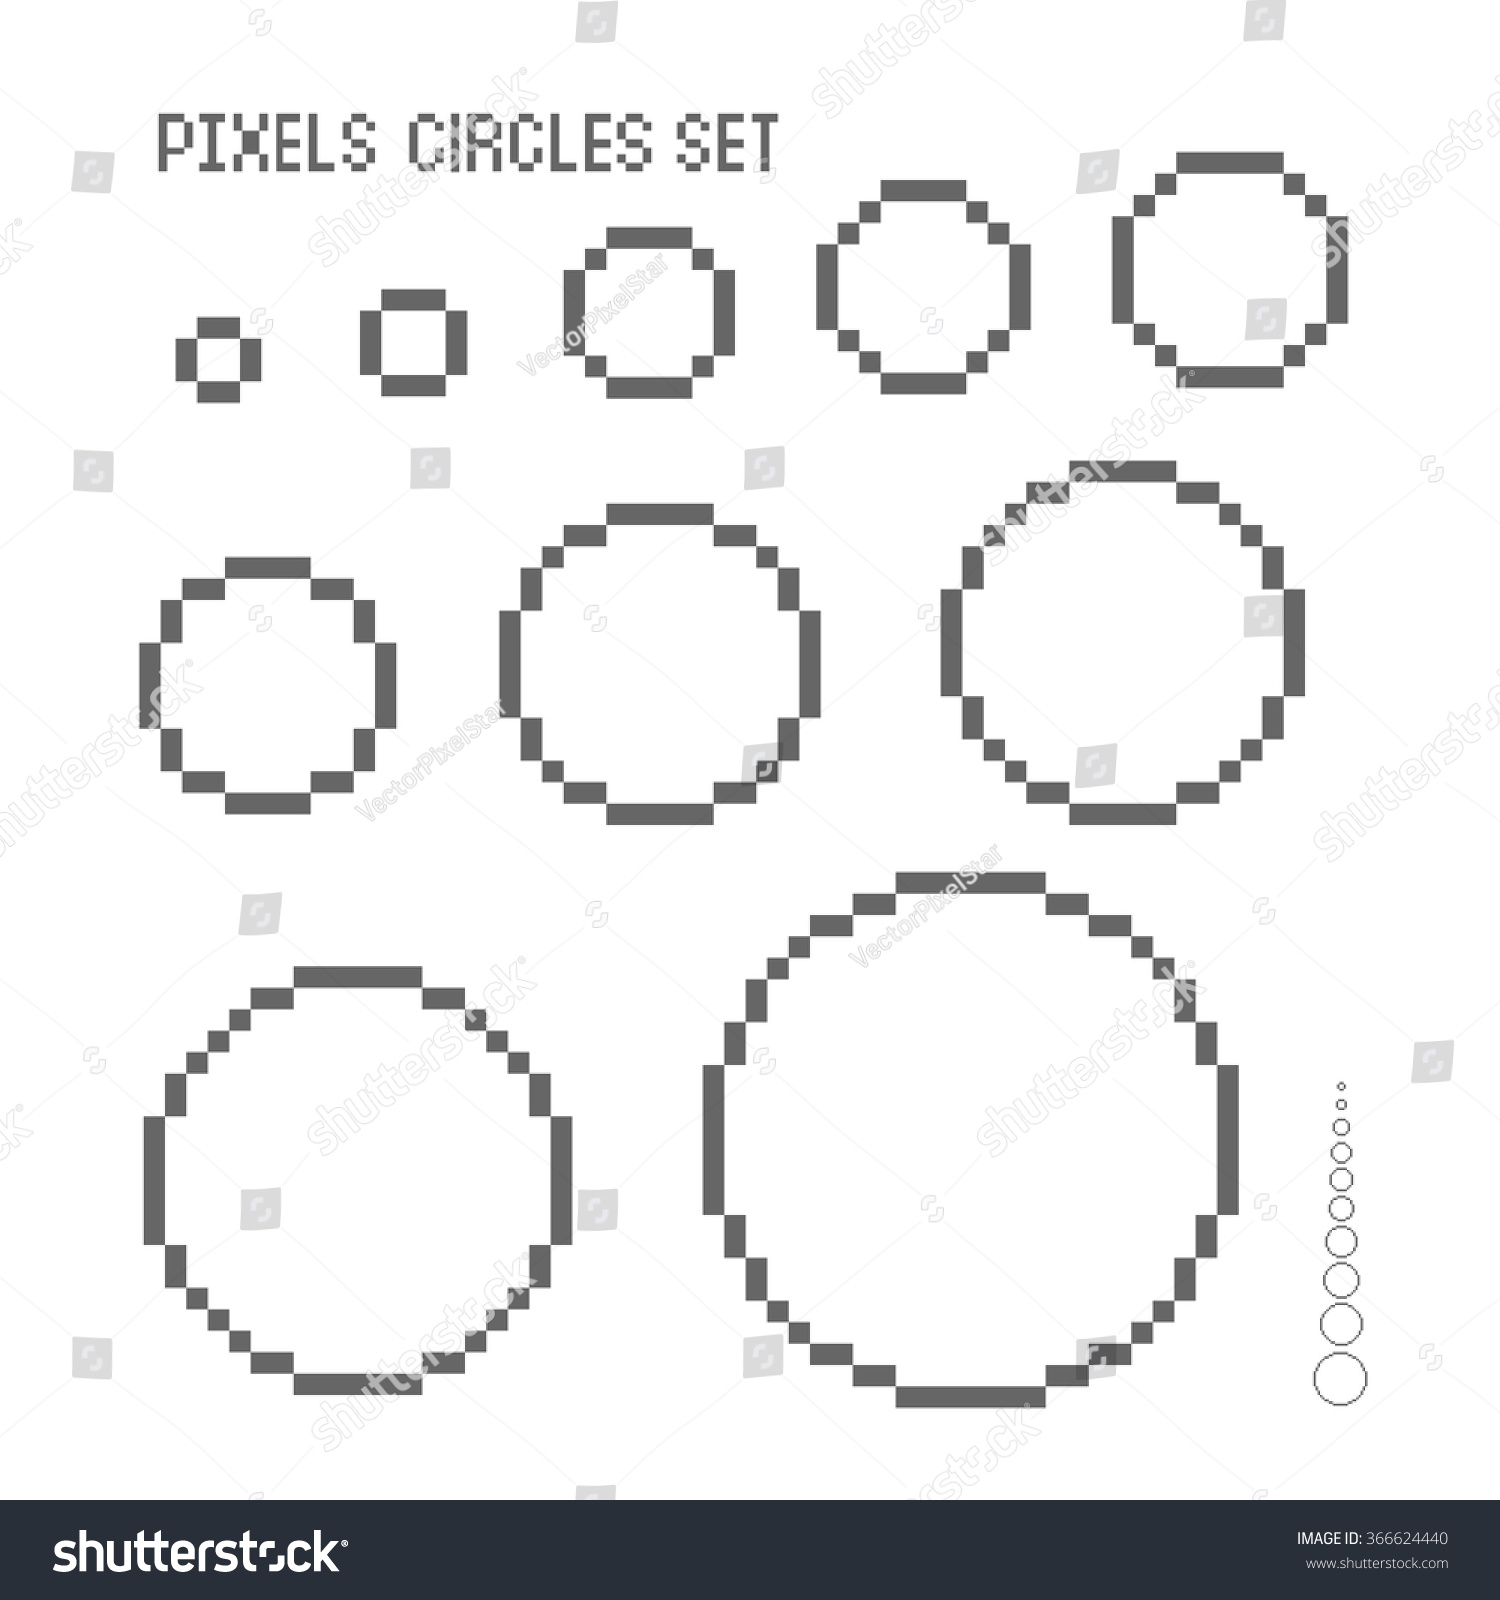 perfect minecraft circle diagram 4 pole starter solenoid wiring list of synonyms and antonyms the word pixel